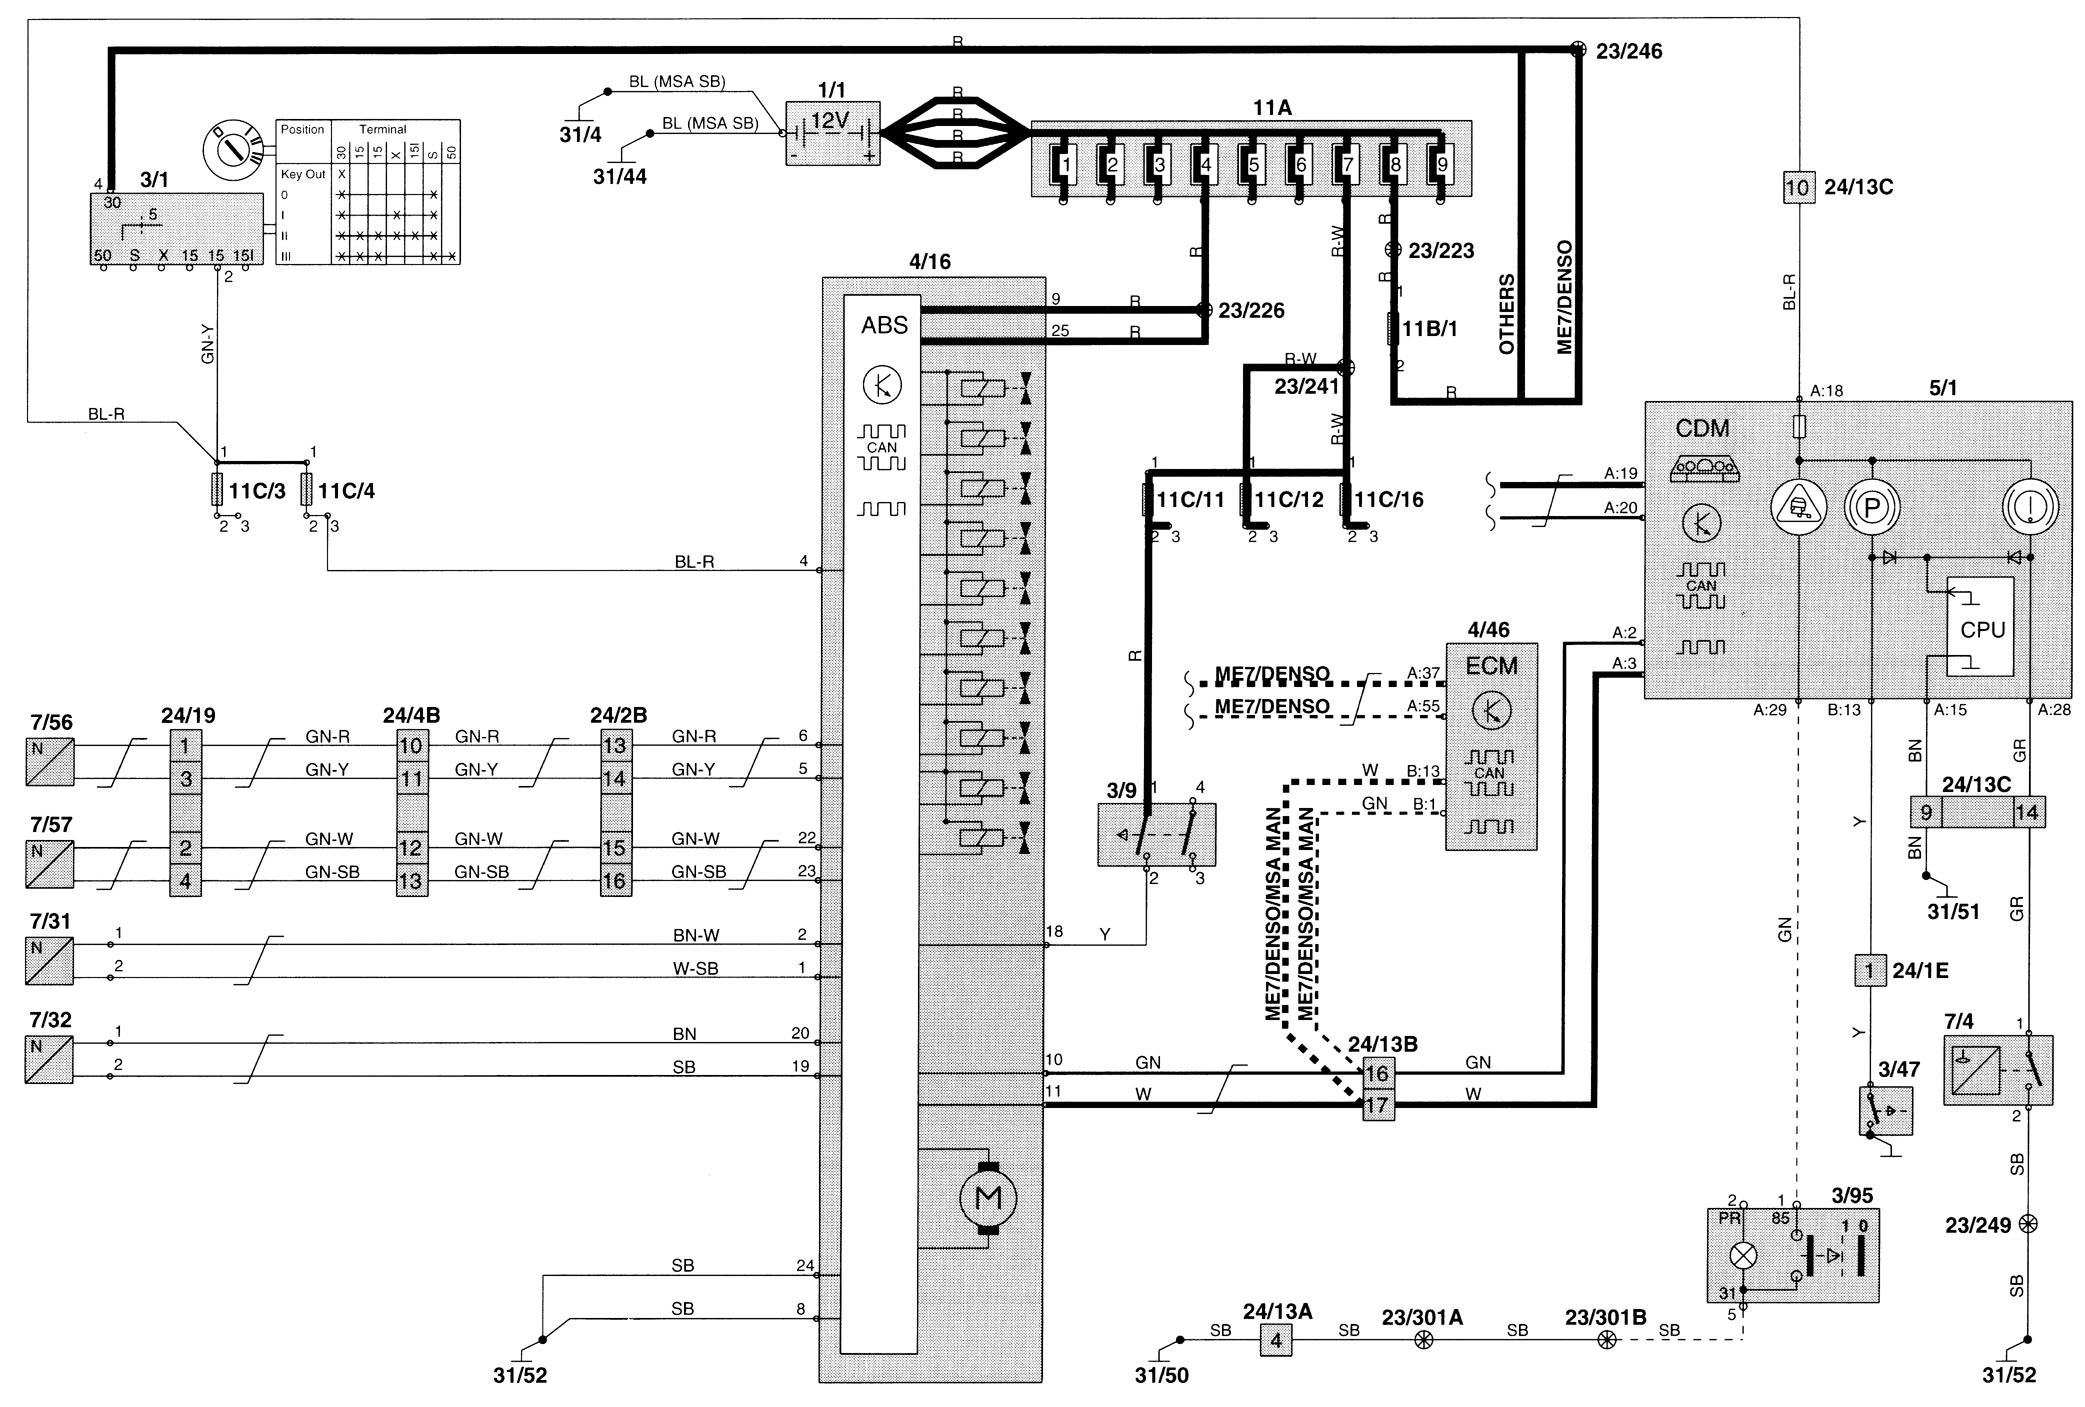 volvo c70 wiring diagram brake control 1999 volvo 1974 142 wiring diagram volvo schematics and wiring diagrams Simple Wiring Schematics at nearapp.co